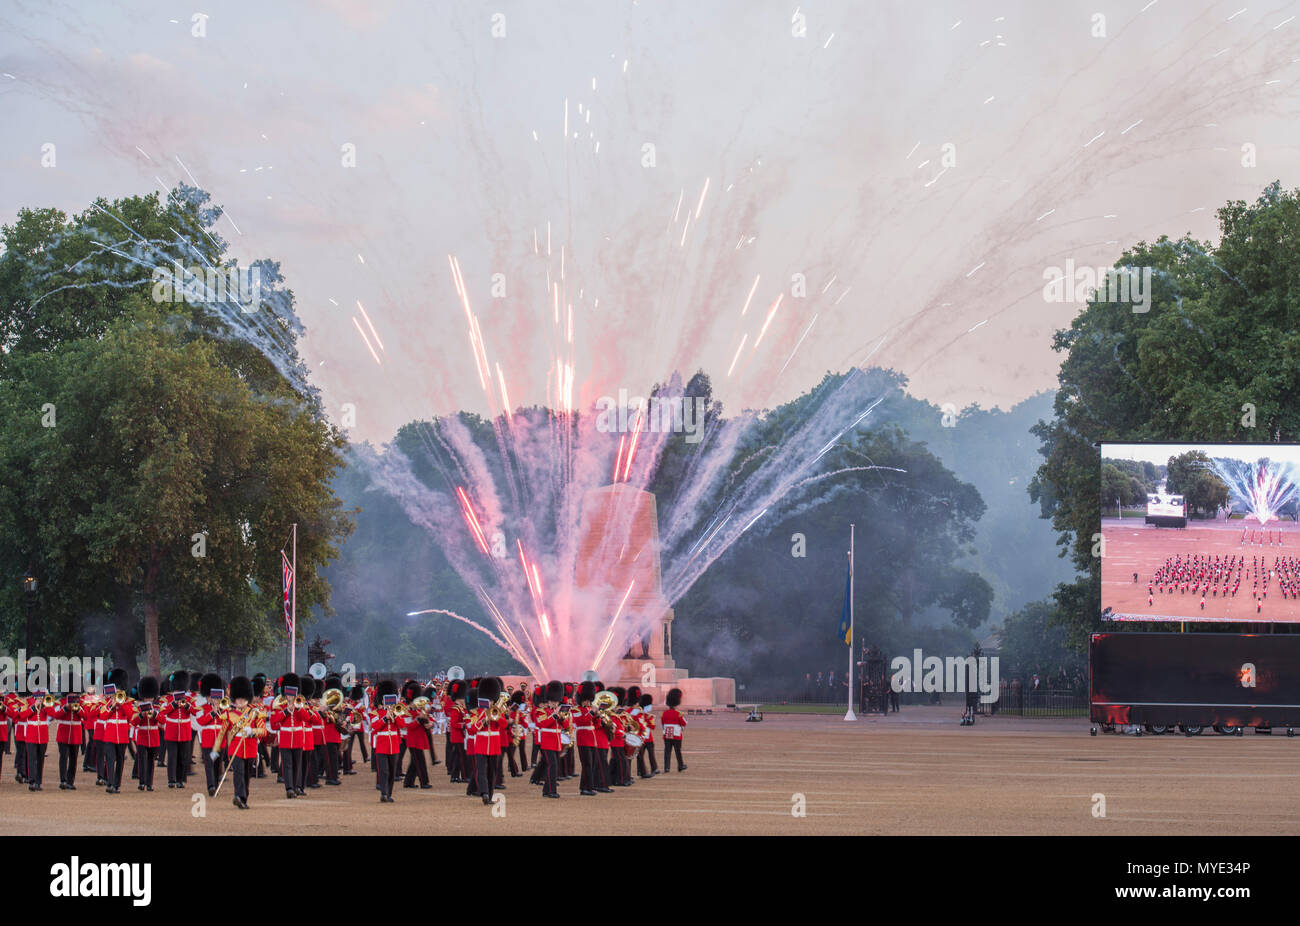 Horse Guards, London, UK. 6 June, 2018. Bands from the United States Army and the Band & Pipes of the United Arab Emirates join the Massed Bands of the Household Division on Horse Guards Parade in the annual celebration that is the Household Division's Beating Retreat. Credit: Malcolm Park editorial/Alamy Live News - Stock Image